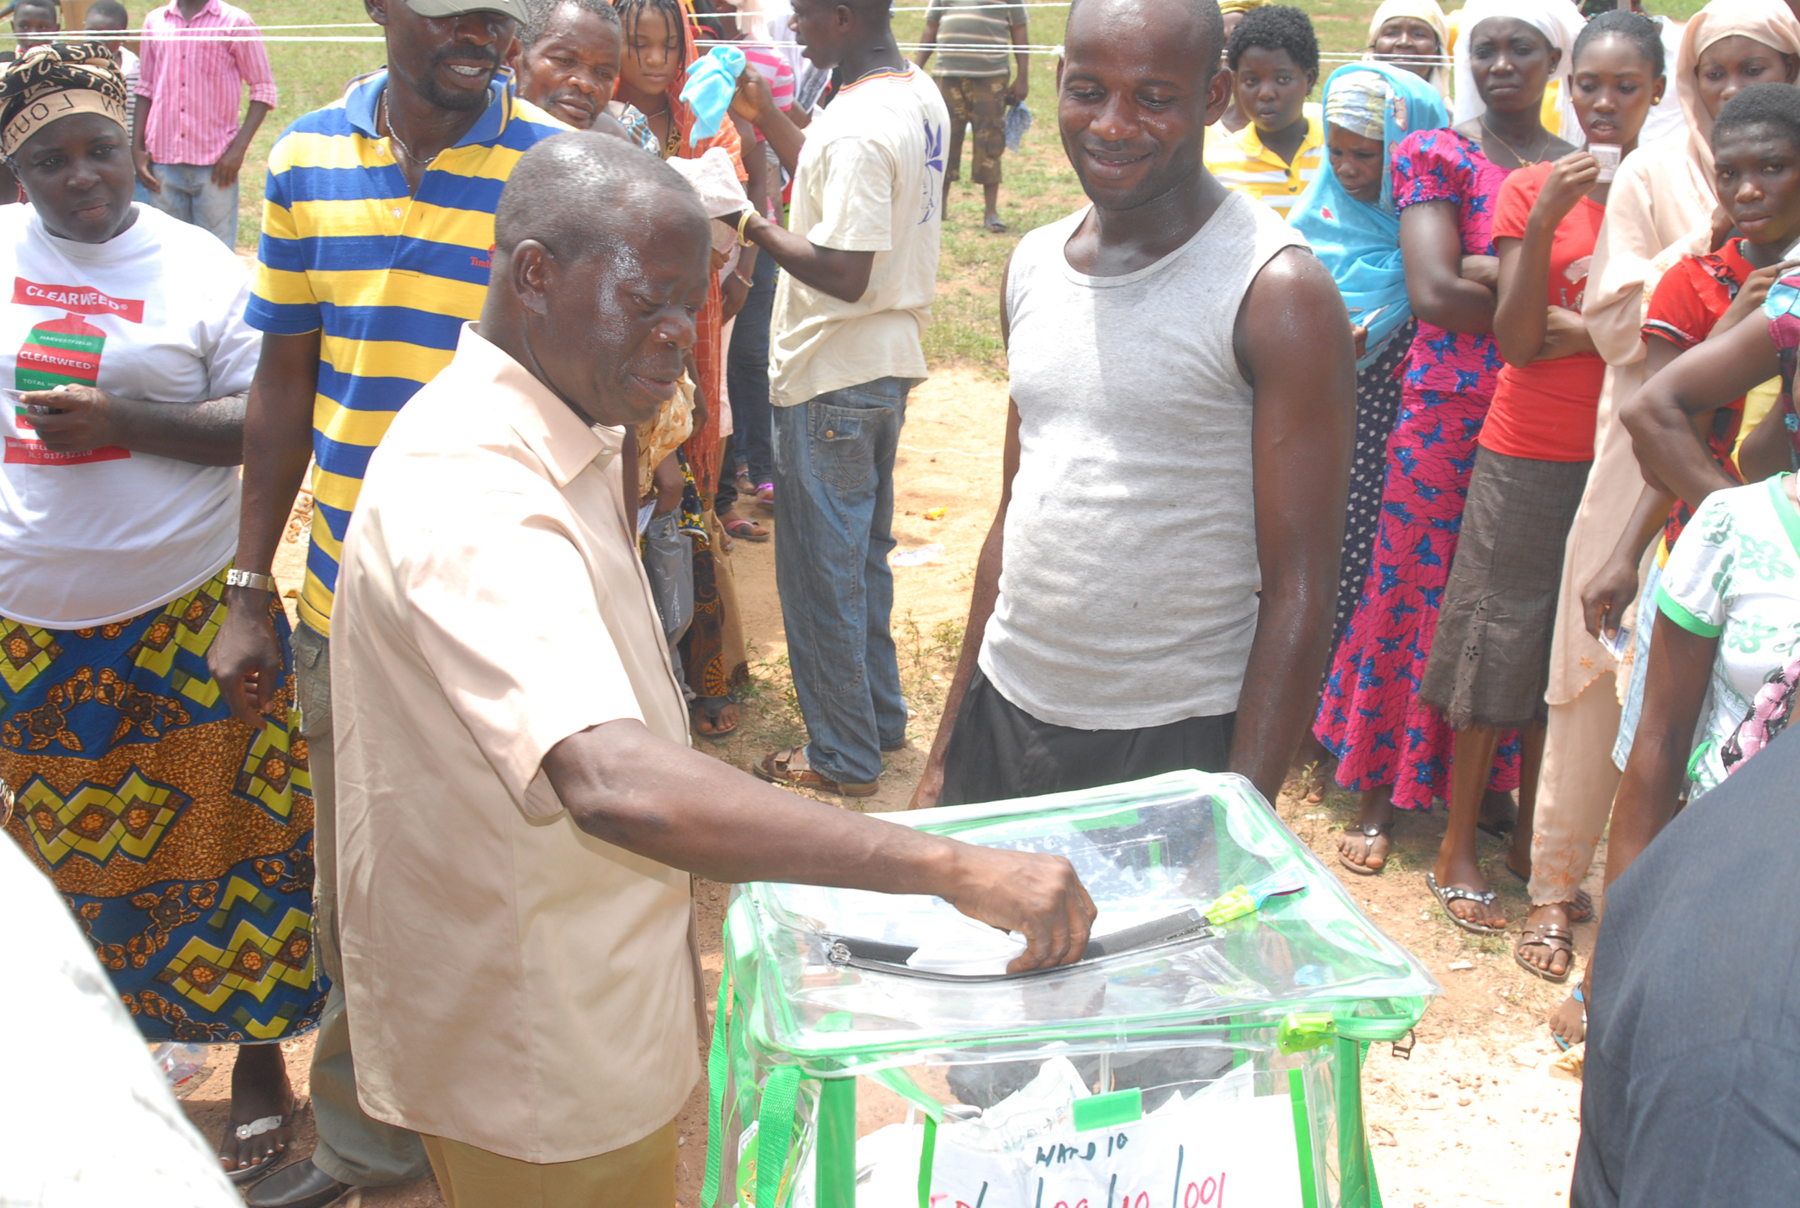 INEC National Commissioner said that it would issue identity cards to agents of various political parties contesting in the guber election in Edo State